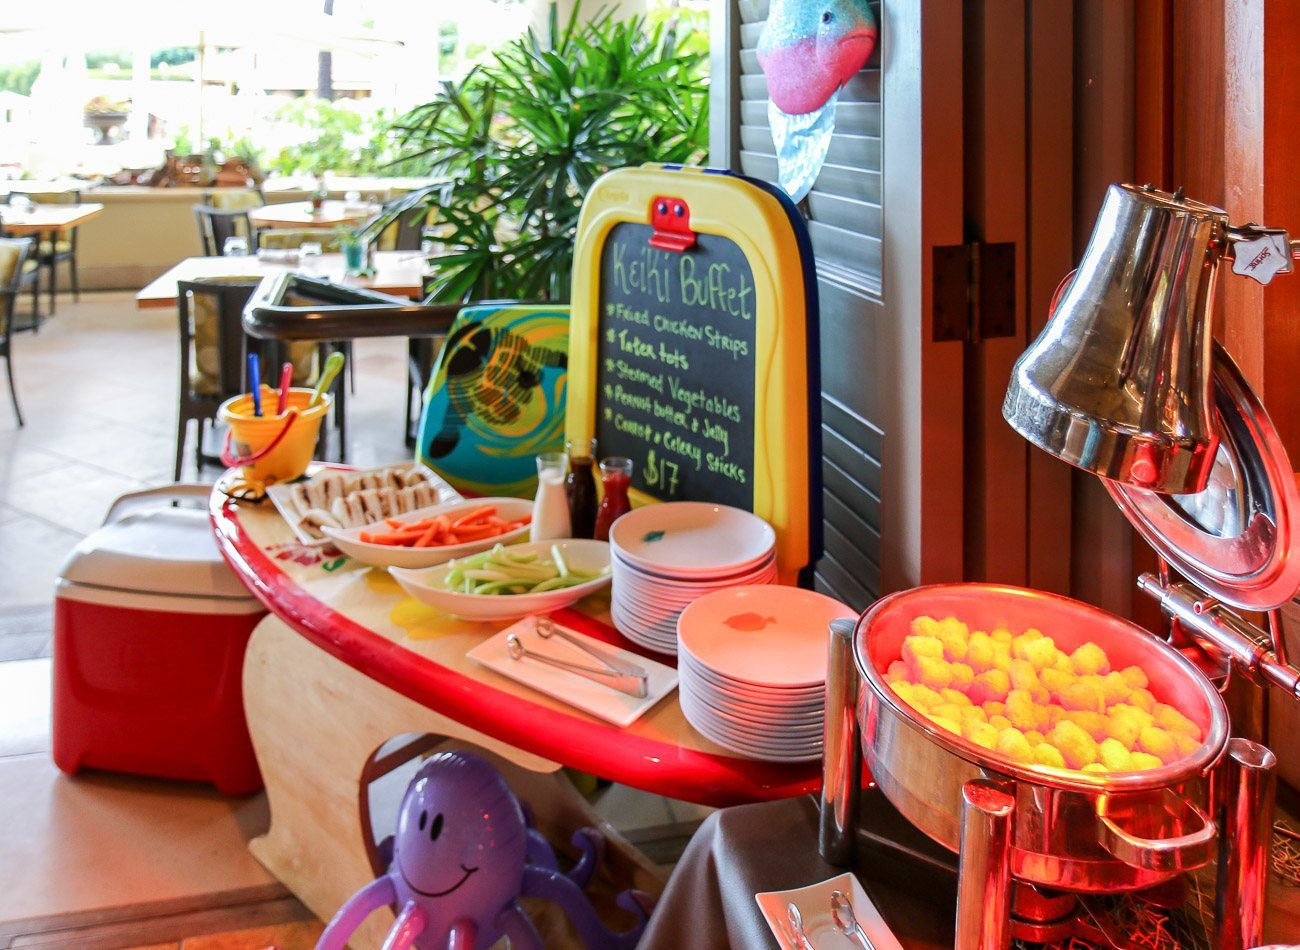 A Keiki buffet at DUO Steak and Seafood restaurant inside Four Seasons Maui.